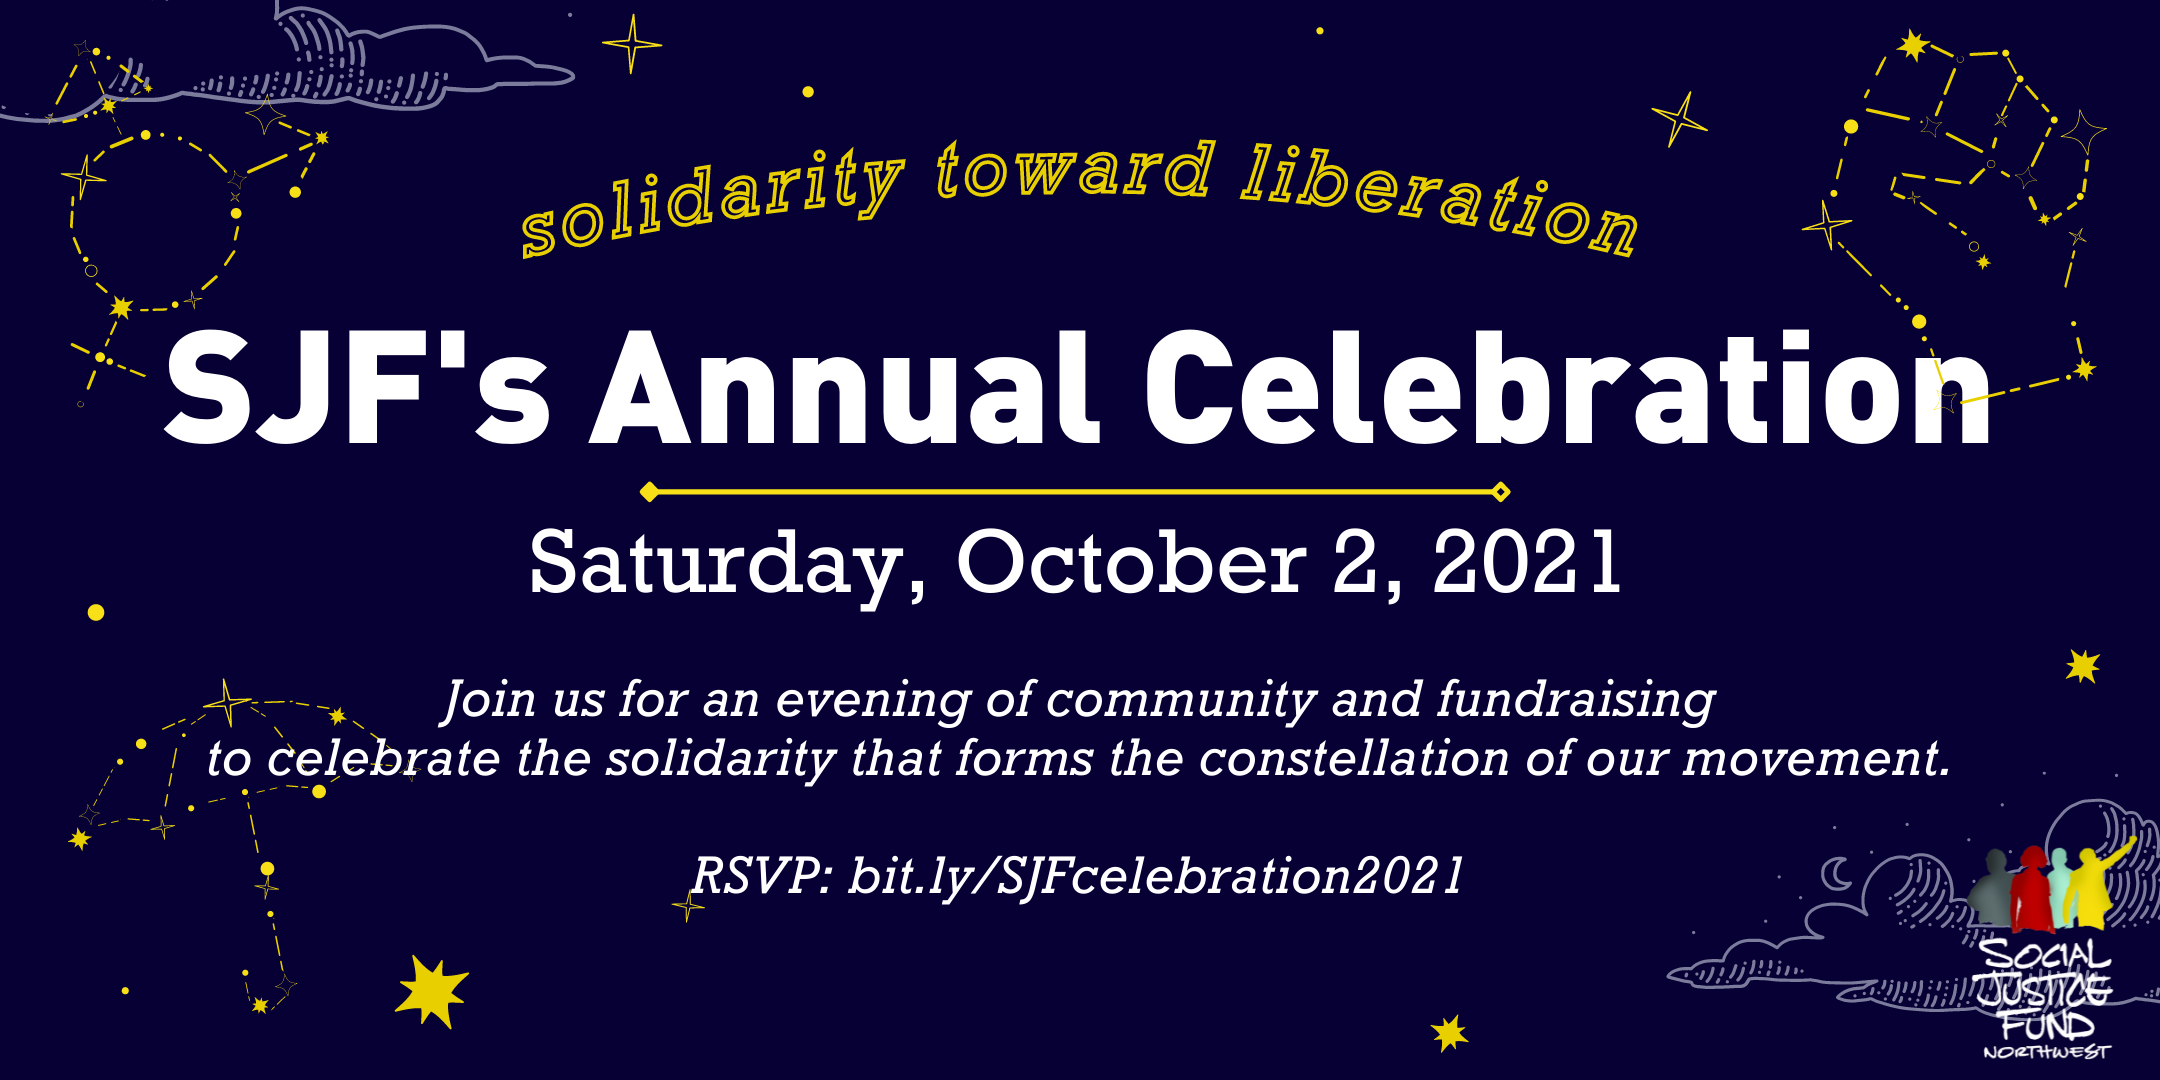 Rectangular banner with blue background and yellow stars depicting a fist umbrella and trans rights symbol. Text reads Solidarity Toward Liberation. SJFs Annual Celebration. October 2 2021